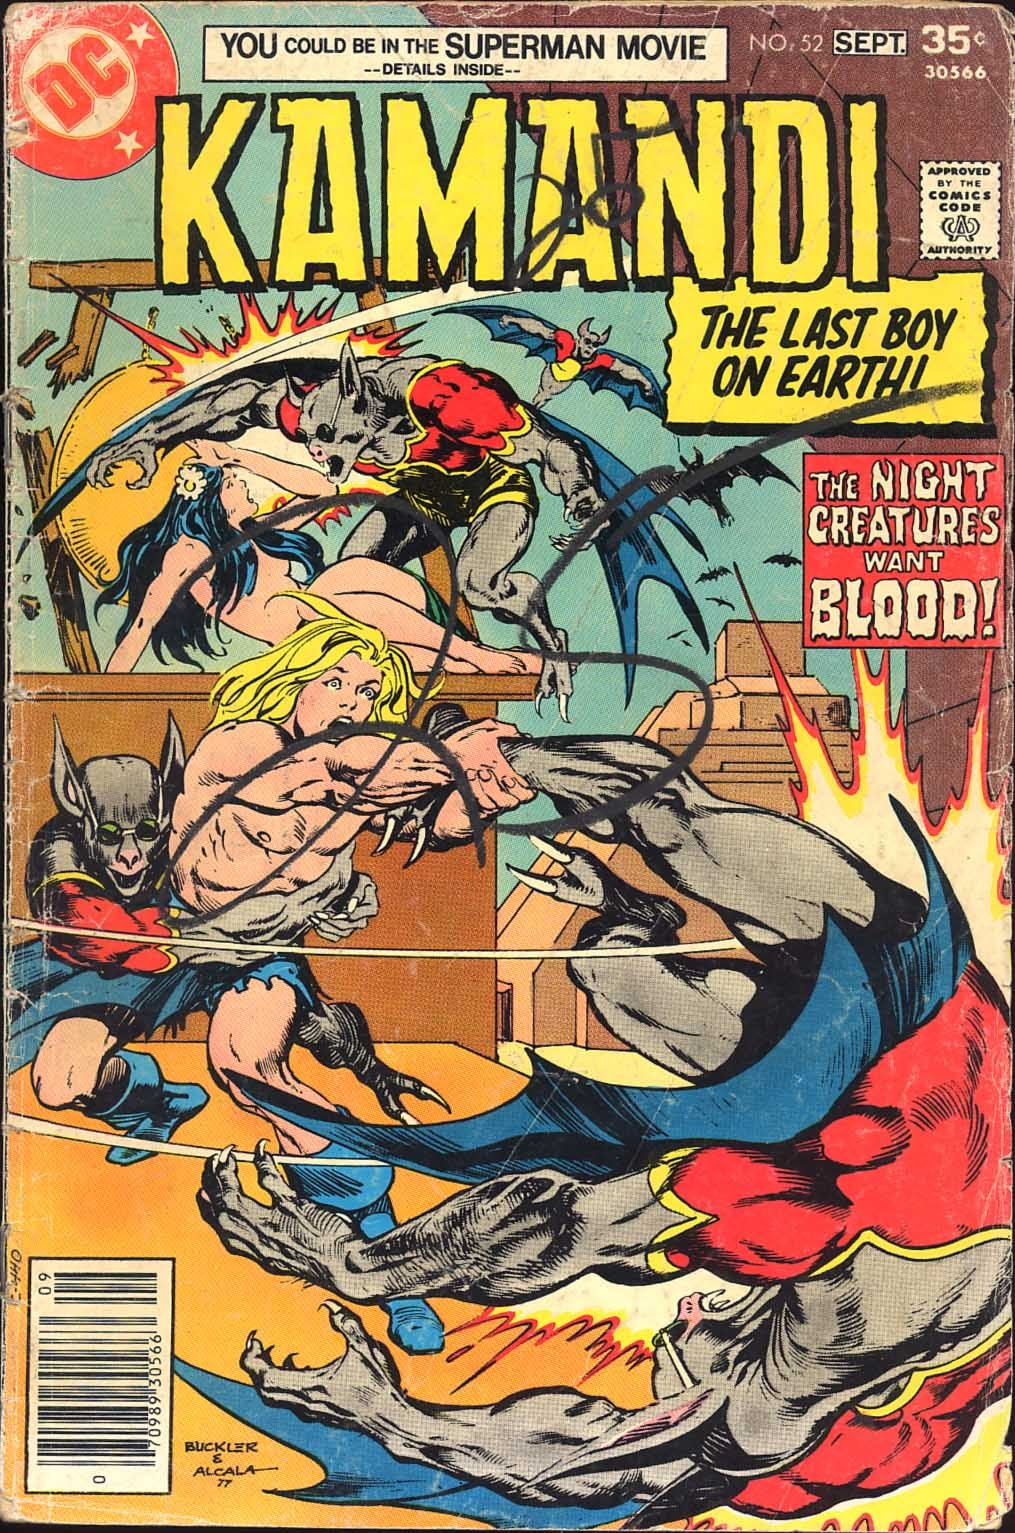 Kamandi, The Last Boy On Earth issue 52 - Page 1